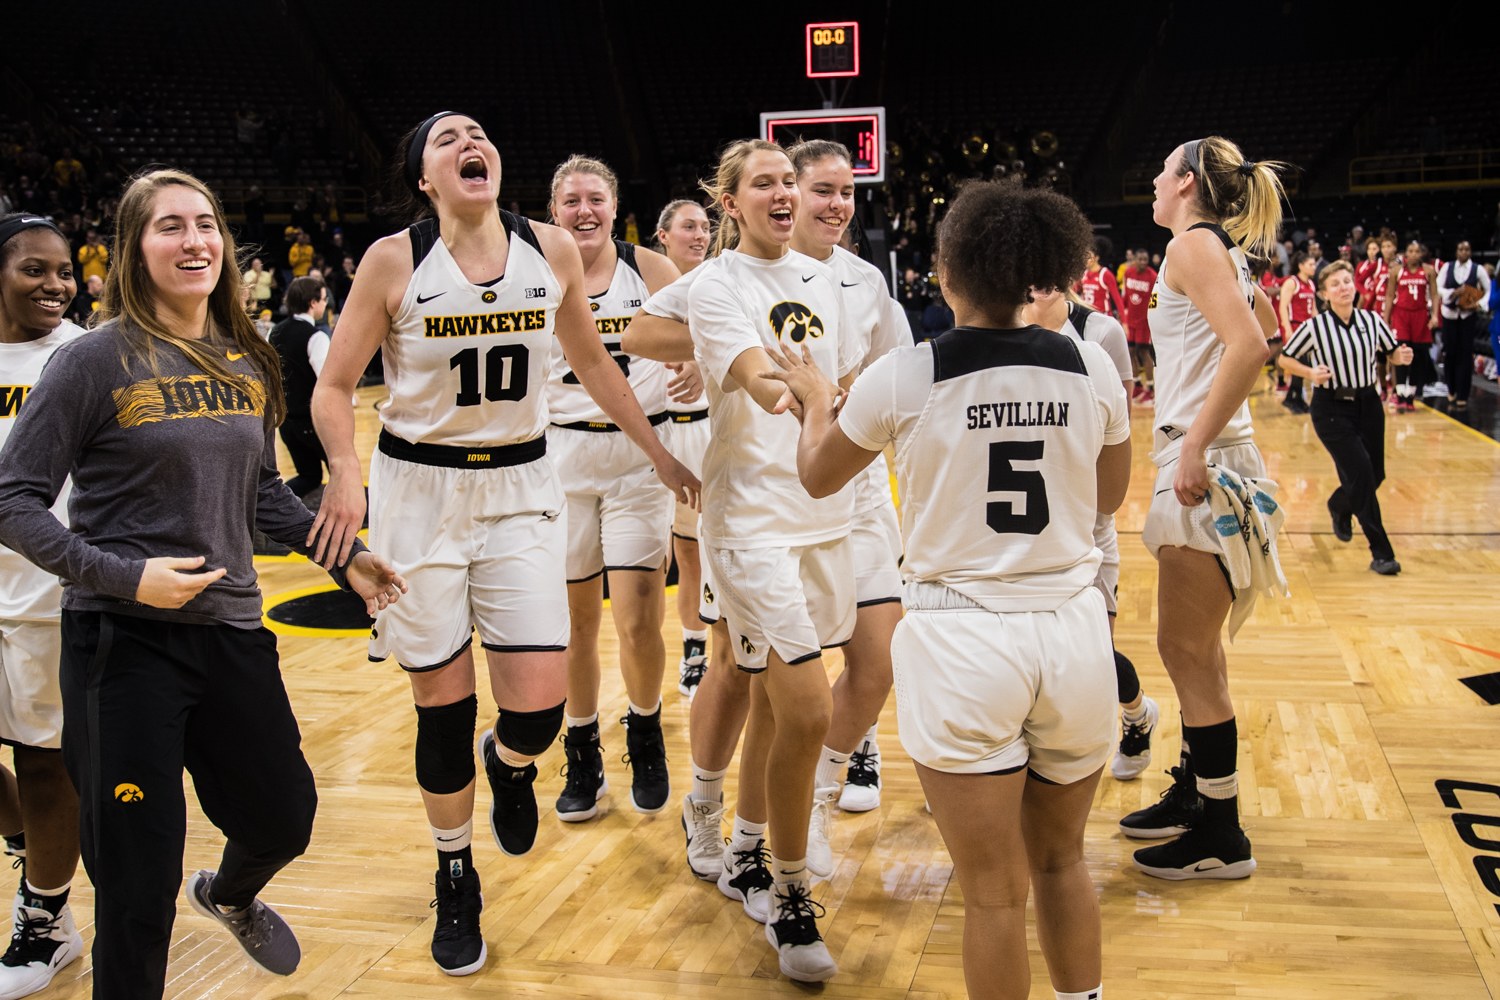 Iowa players celebrate a victory after a women's basketball matchup between Iowa and Rutgers at Carver-Hawkeye Arena on Wednesday, January 23, 2019. The Hawkeyes defeated the Scarlet Knights, 72-66.